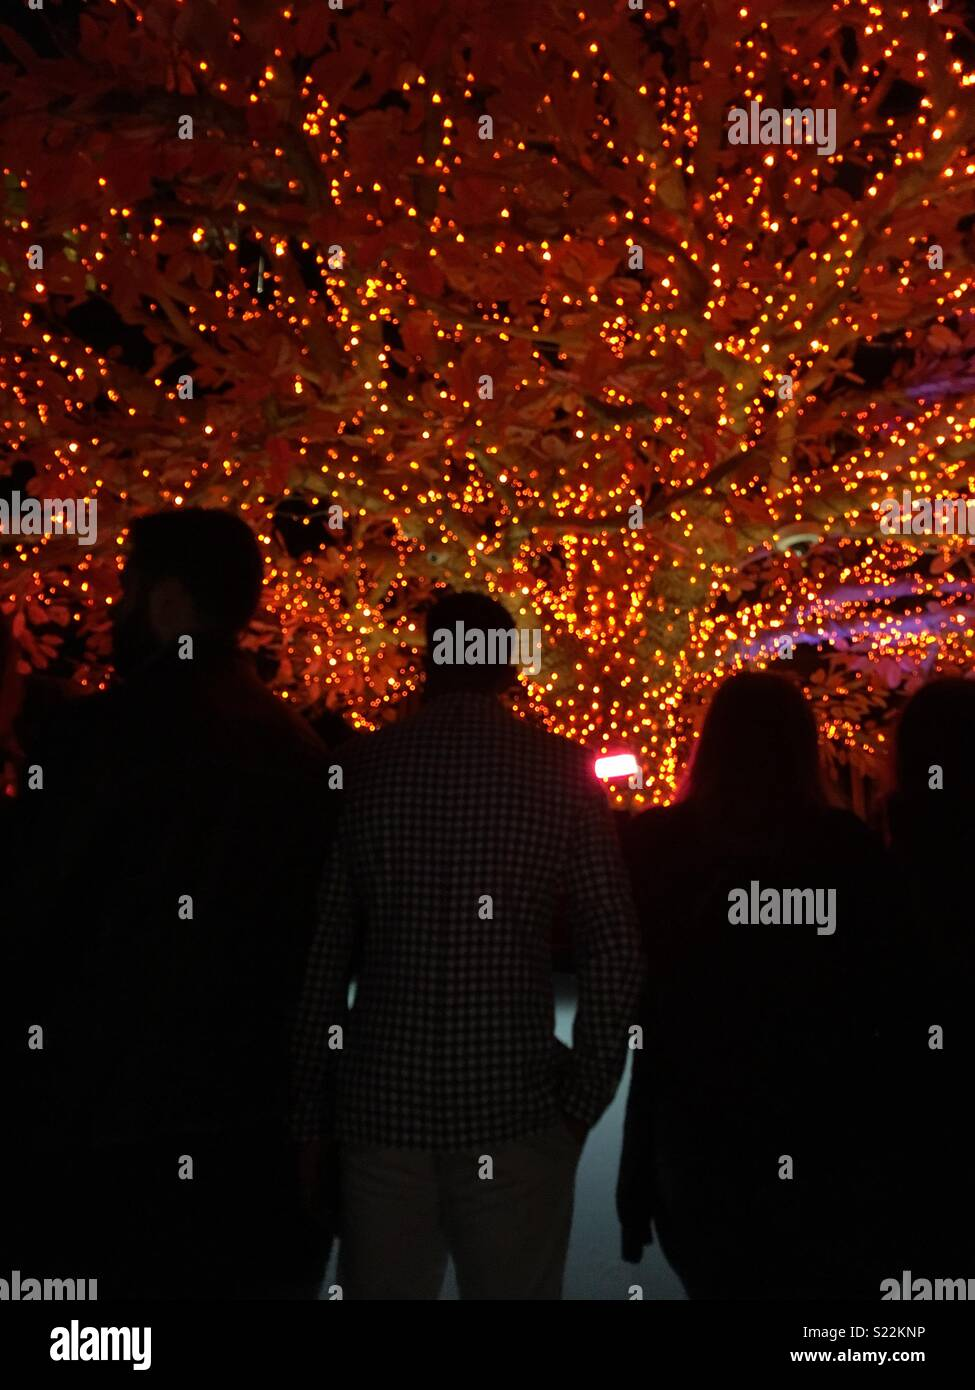 People queuing to buy drinks at an outdoor bar at night, under a tree sparkling with lights, taken at Sushisamba, London. - Stock Image